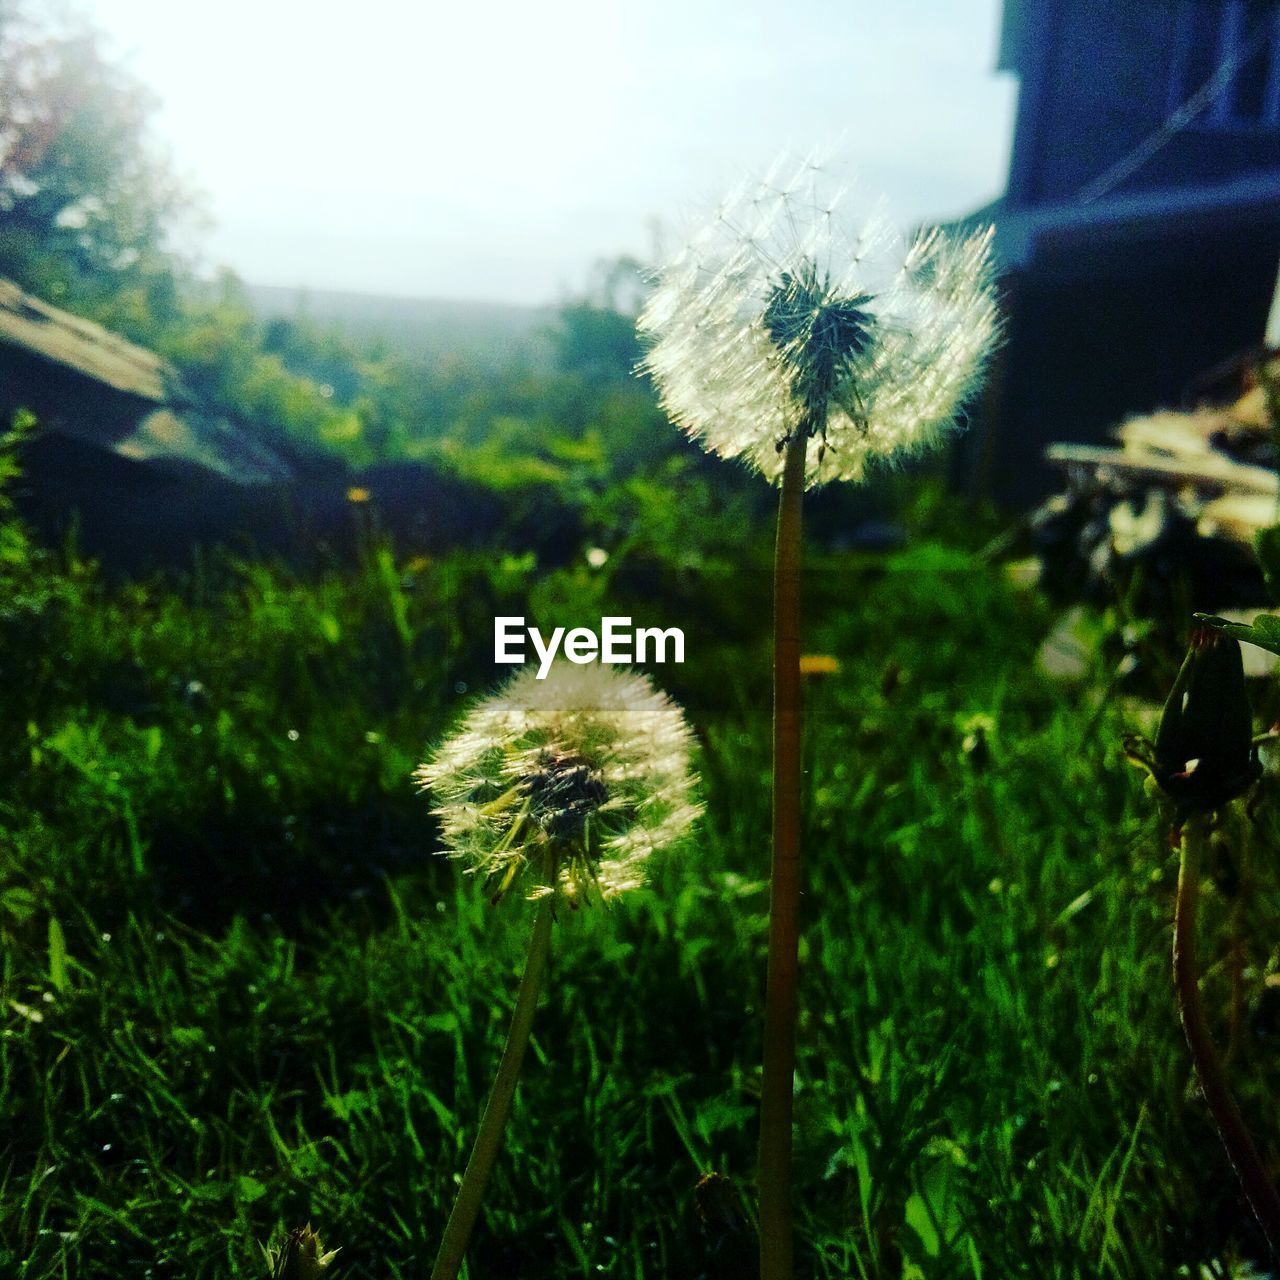 flower, growth, nature, fragility, dandelion, plant, freshness, beauty in nature, stem, botany, outdoors, softness, uncultivated, wildflower, flower head, day, field, no people, grass, close-up, focus on foreground, blooming, sky